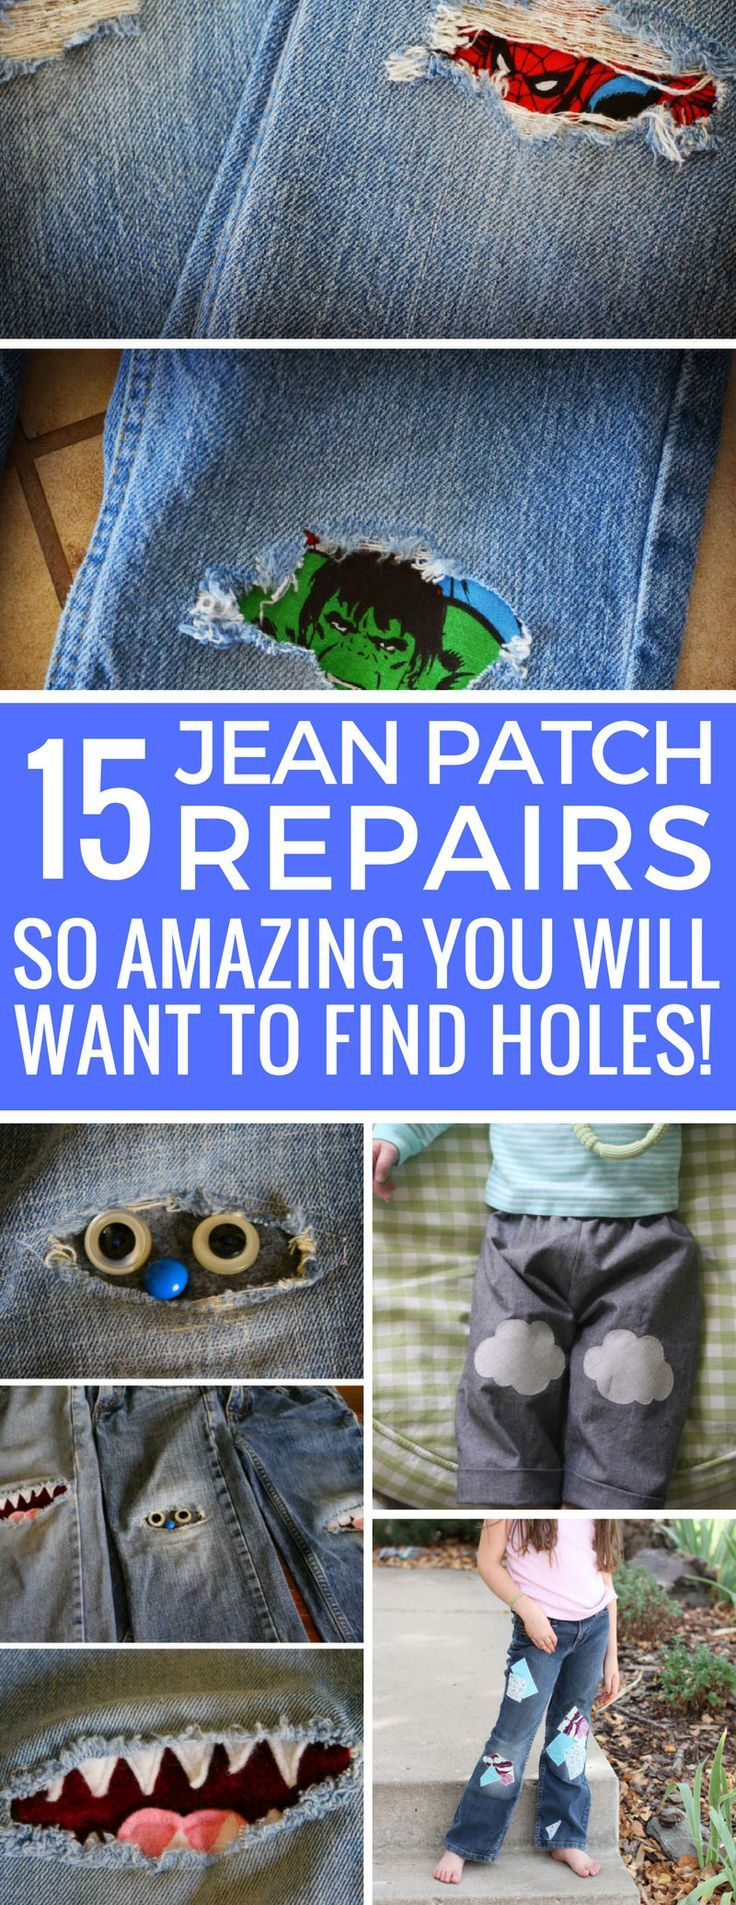 Wow - these jean patch repair ideas are so cool my kids might finally let me fix their jeans!